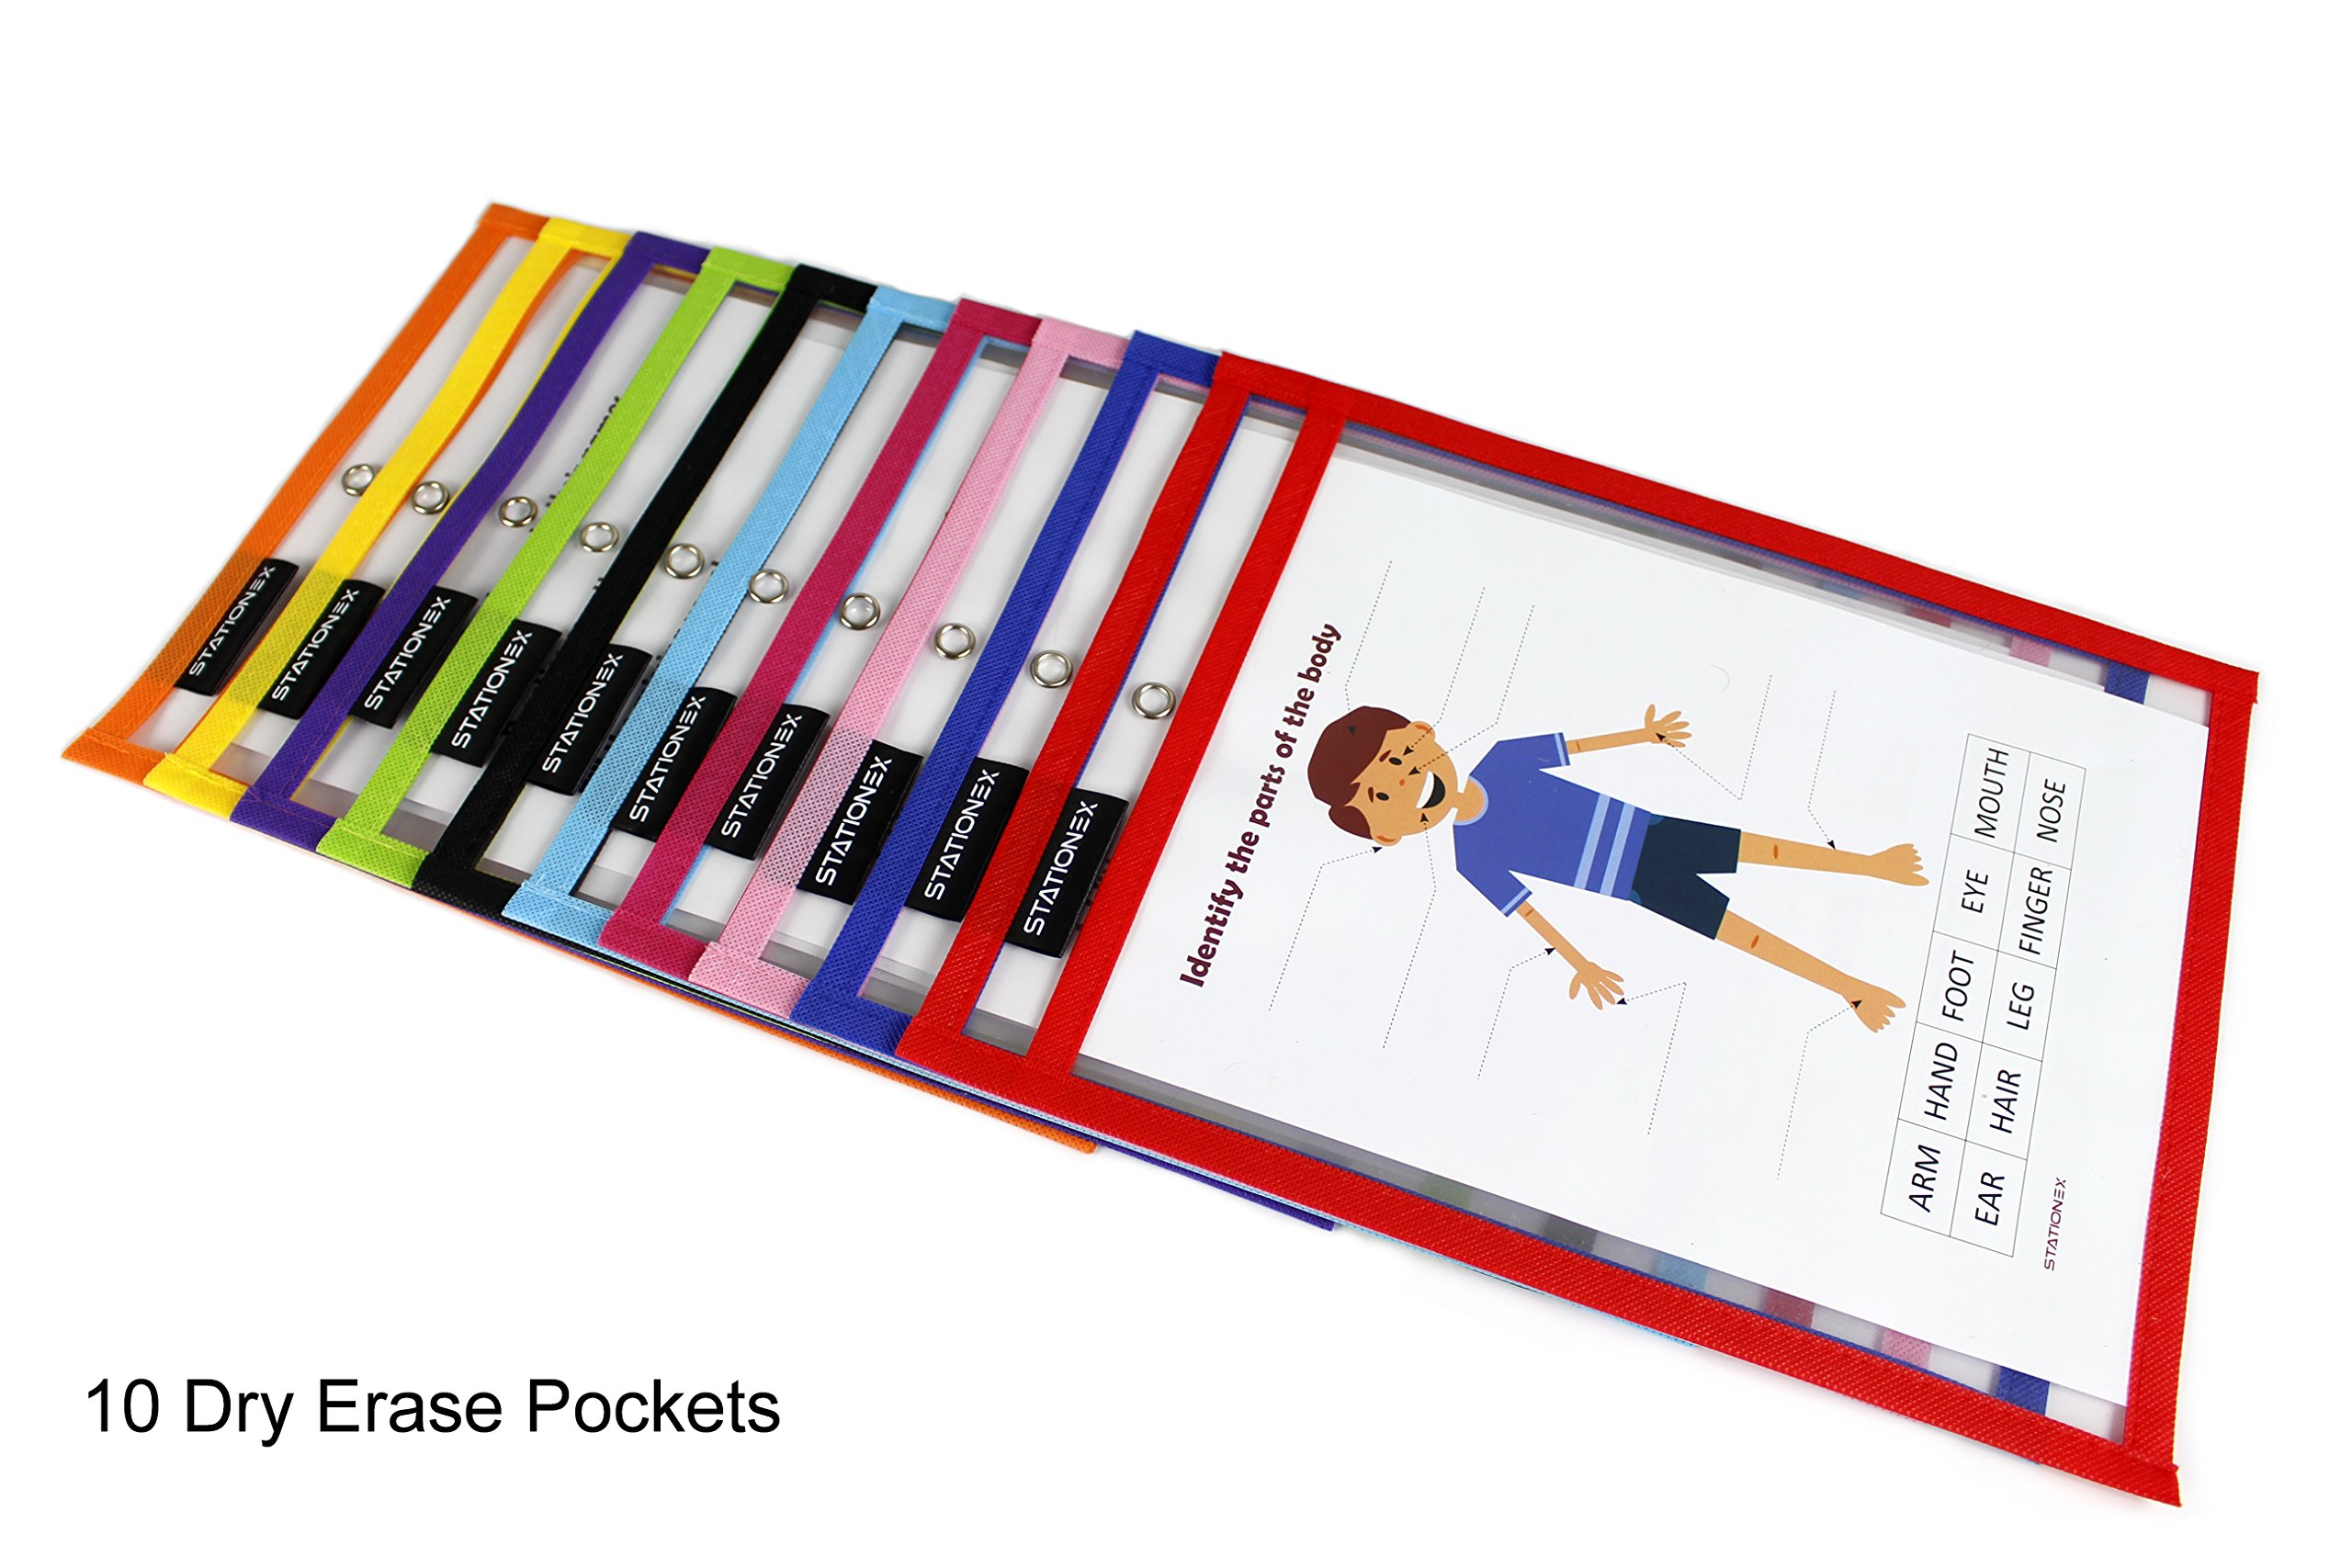 Reusable Dry Erase Pockets, Large Size 10 x 13 Inches, 10 Assorted Color Write and Wipe Off Sleeves + 2 Erasers per Pack - by Stationex by Stationex (Image #2)